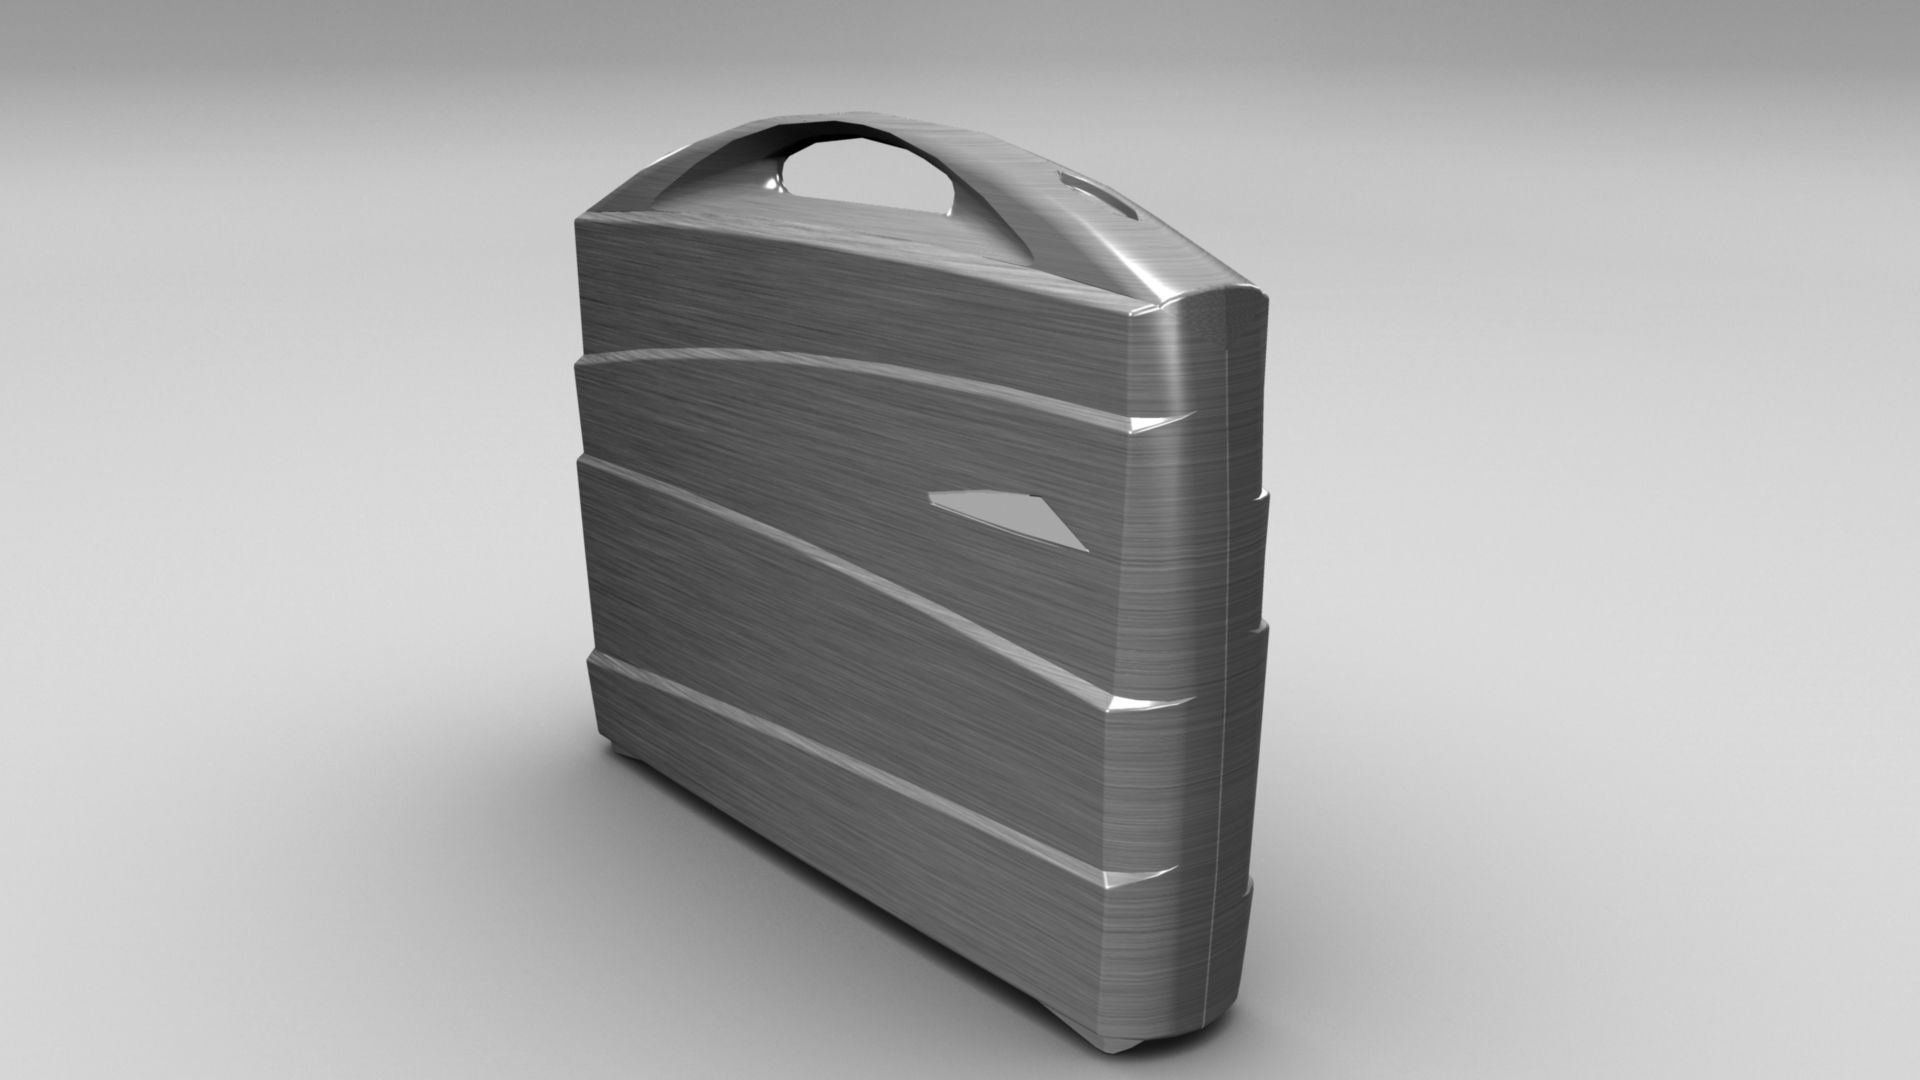 metal suitcase 3d model max fbx ma mb obj 286023